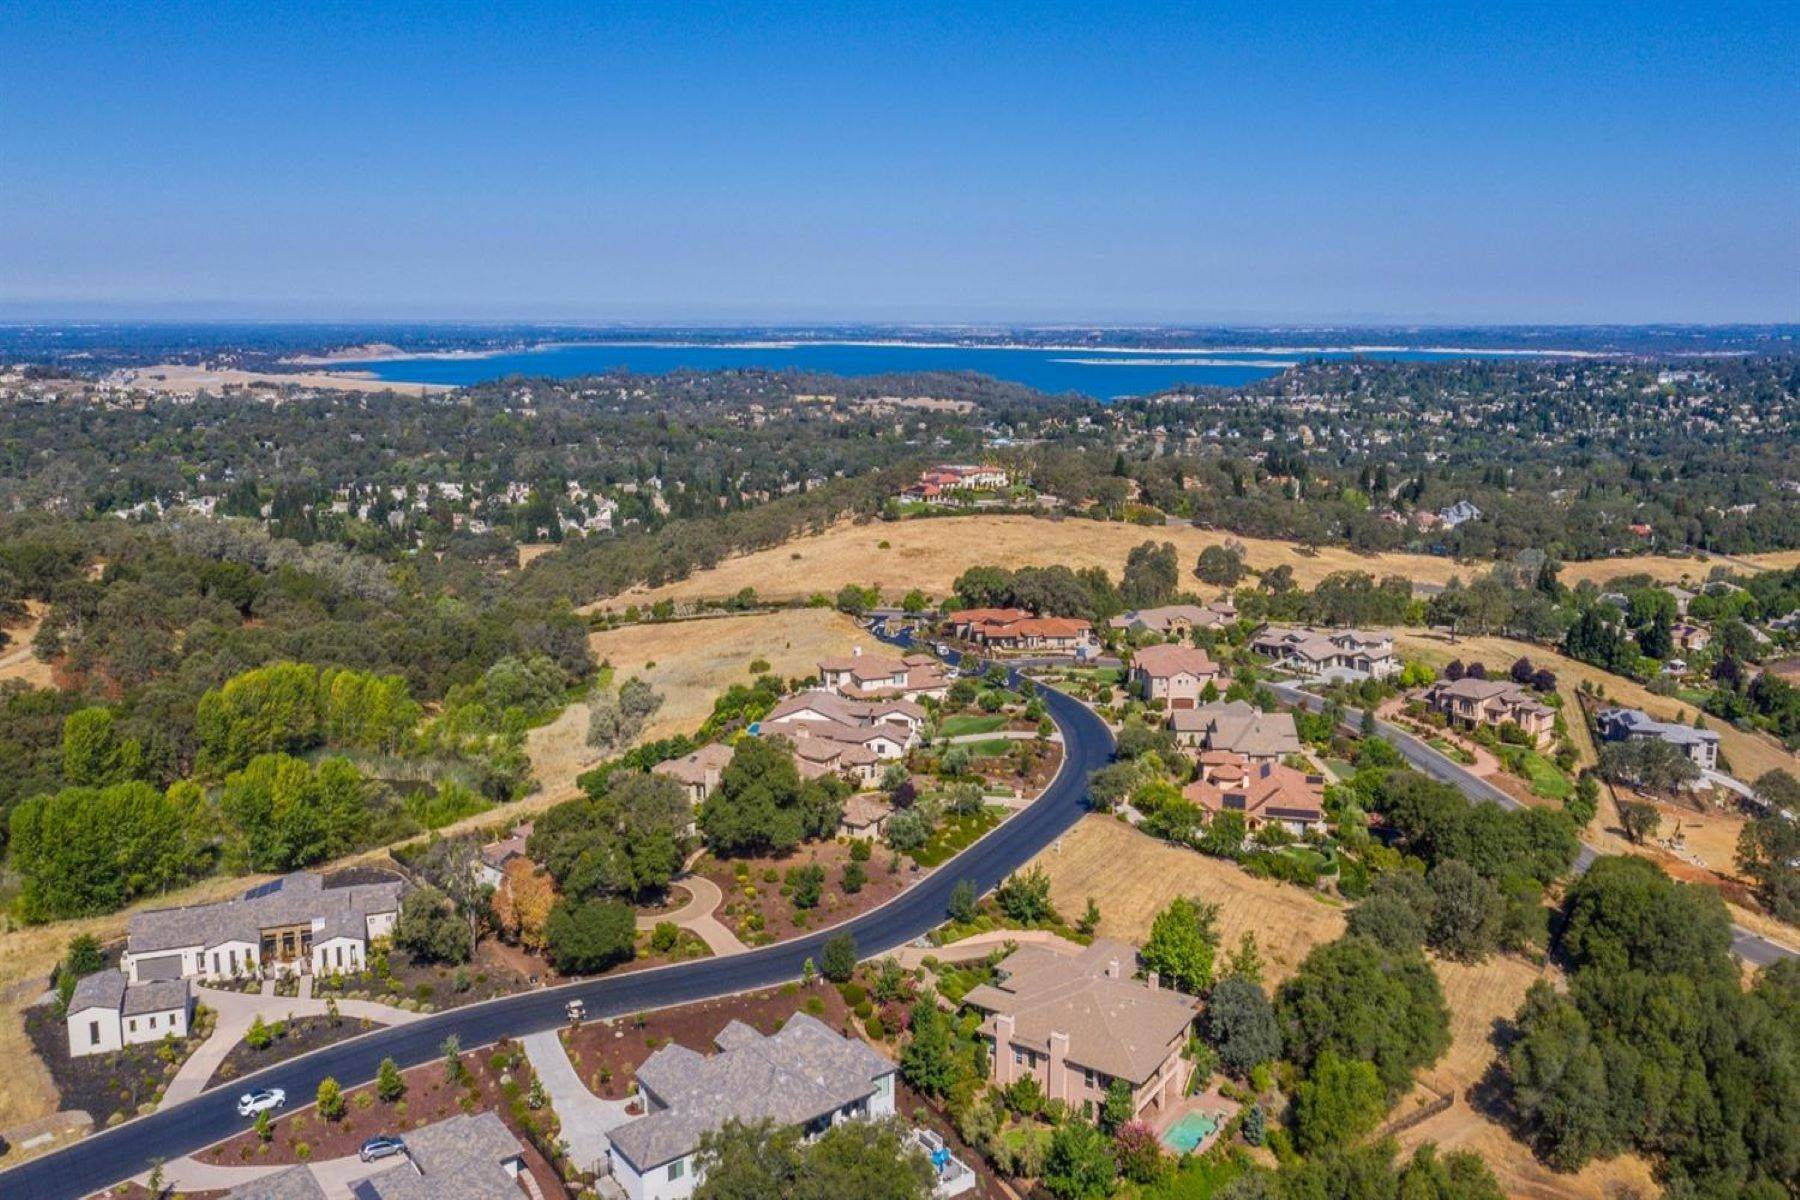 9. Land for Sale at 0 Lot 123 Greyson Creek, El Dorado Hills, CA, 95762 4921 Greyson Creek El Dorado Hills, California 95762 United States